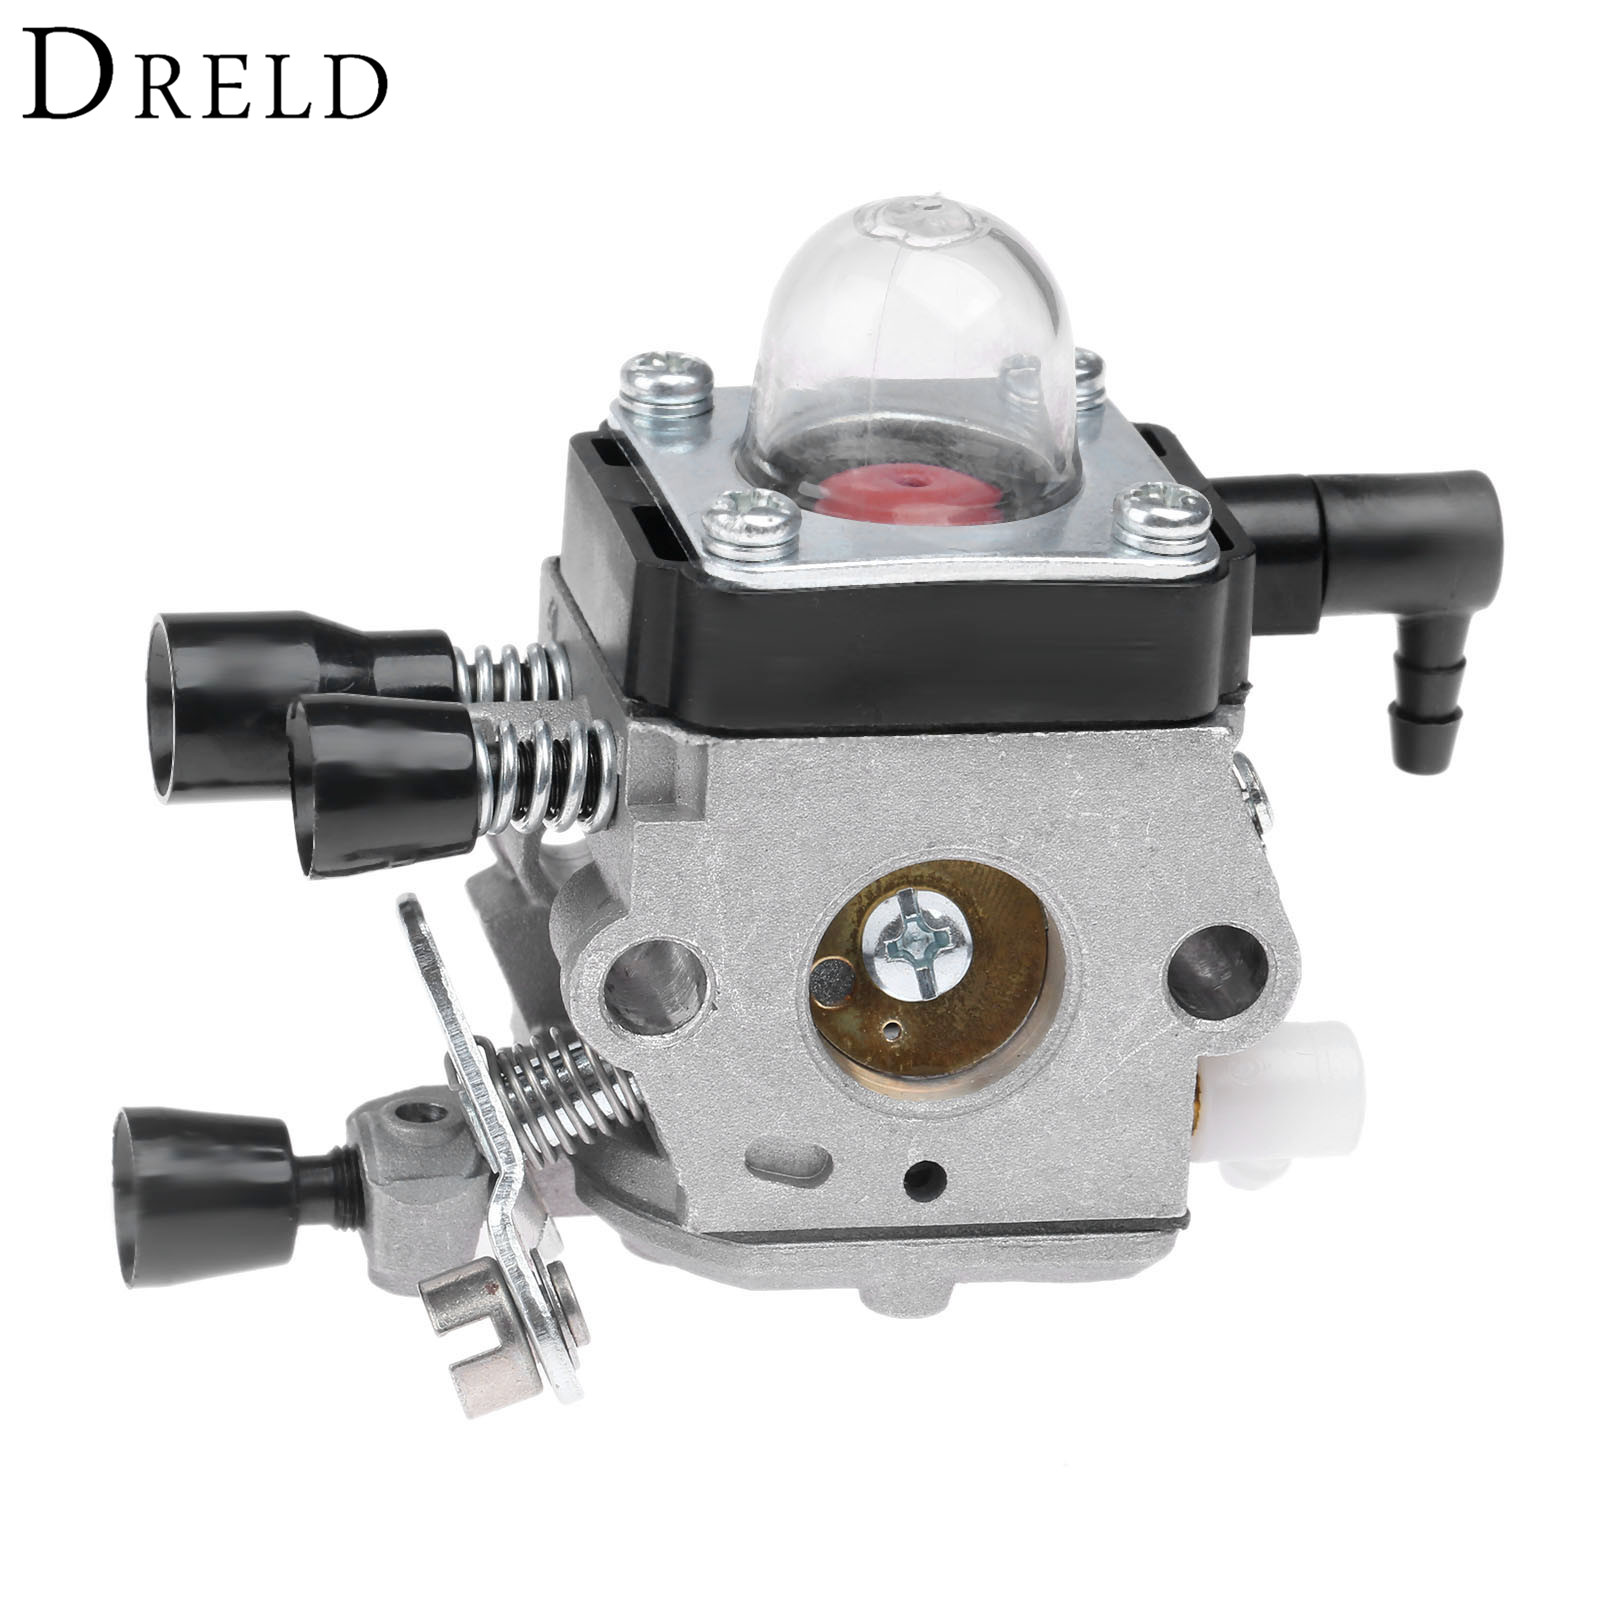 DRELD Chainsaws Carburetor Carby Replace for Stihl FS38 FS45 FS46 FS46 FS55 HL45 FC55 Fit for Zama C1Q-S186 Chainsaws Spare Part carburetor fits for stihl 070 090 090g 090av chainsaws replaces original lb s9